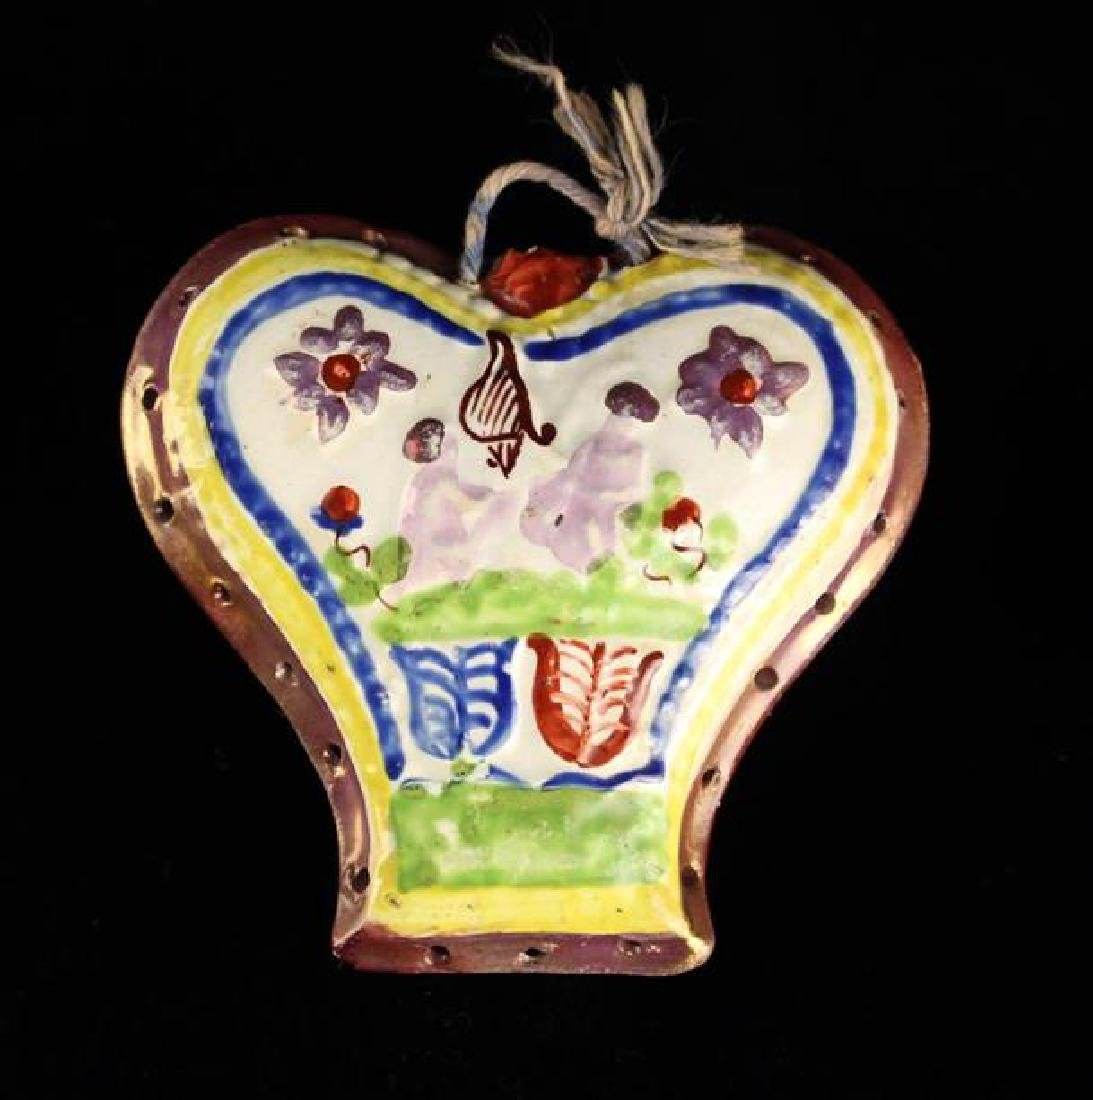 A Charming 19th Century Yorkshire Ceramic Knitting